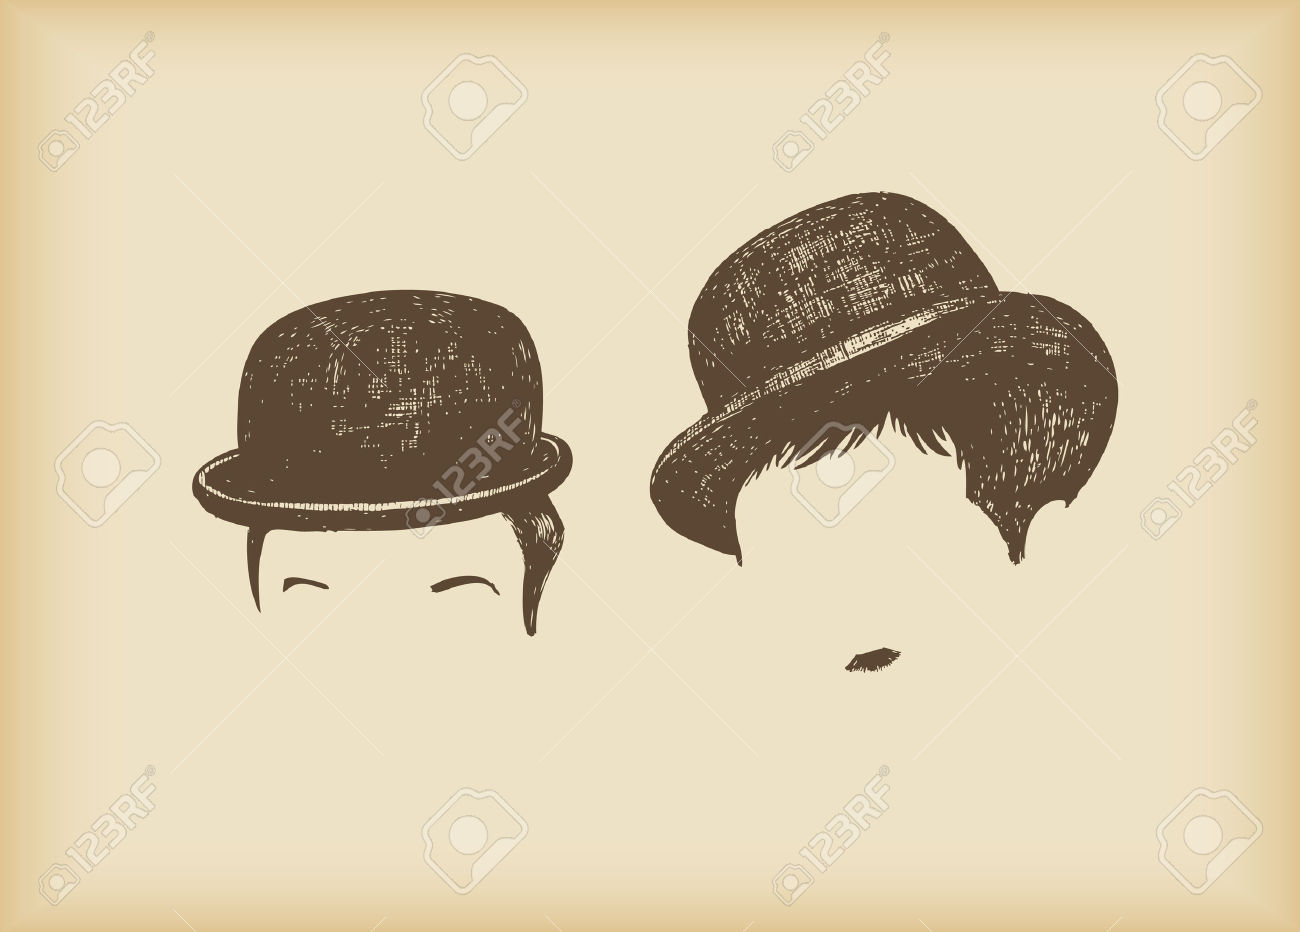 Where Is Laurel & Hardy? Royalty Free Cliparts, Vectors, And Stock.